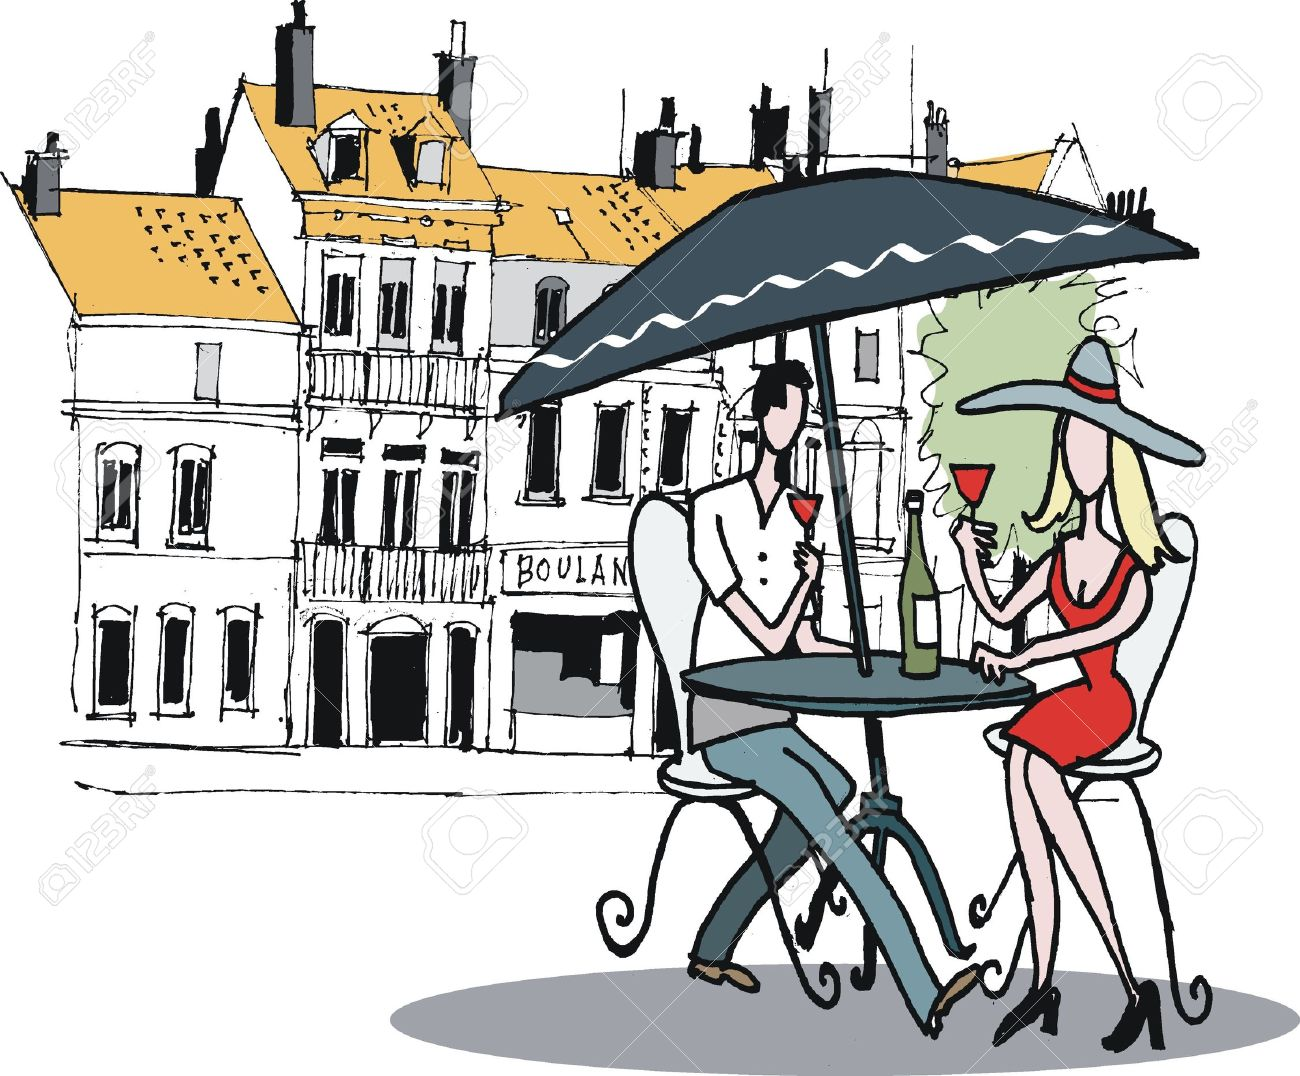 Drawing at getdrawings com. Cafe clipart restaurant french